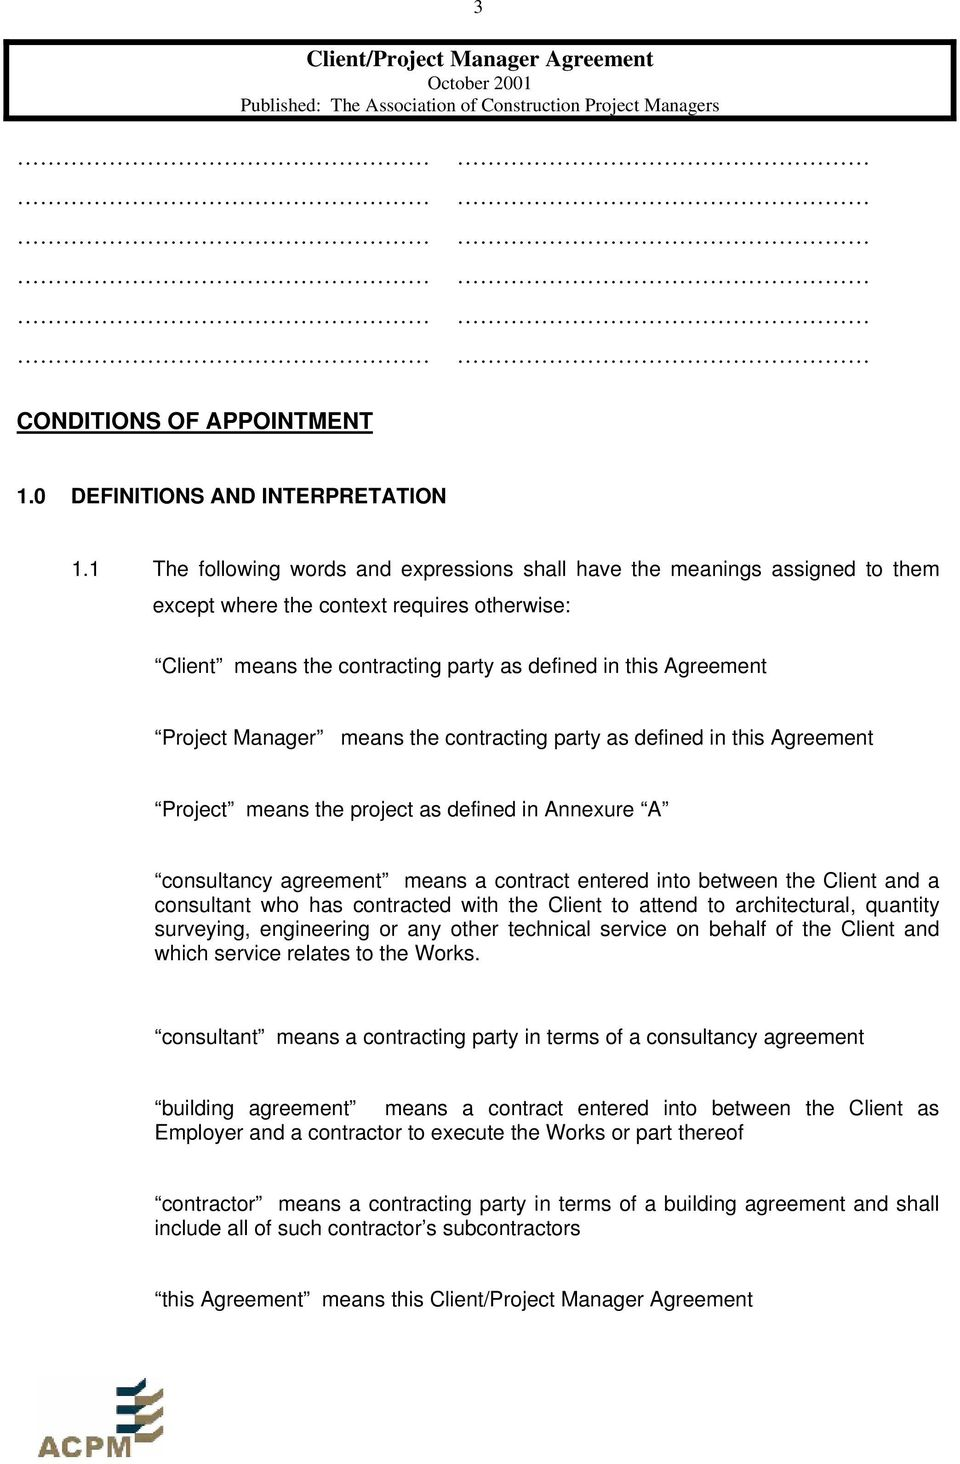 Client Project Manager Agreement Pdf